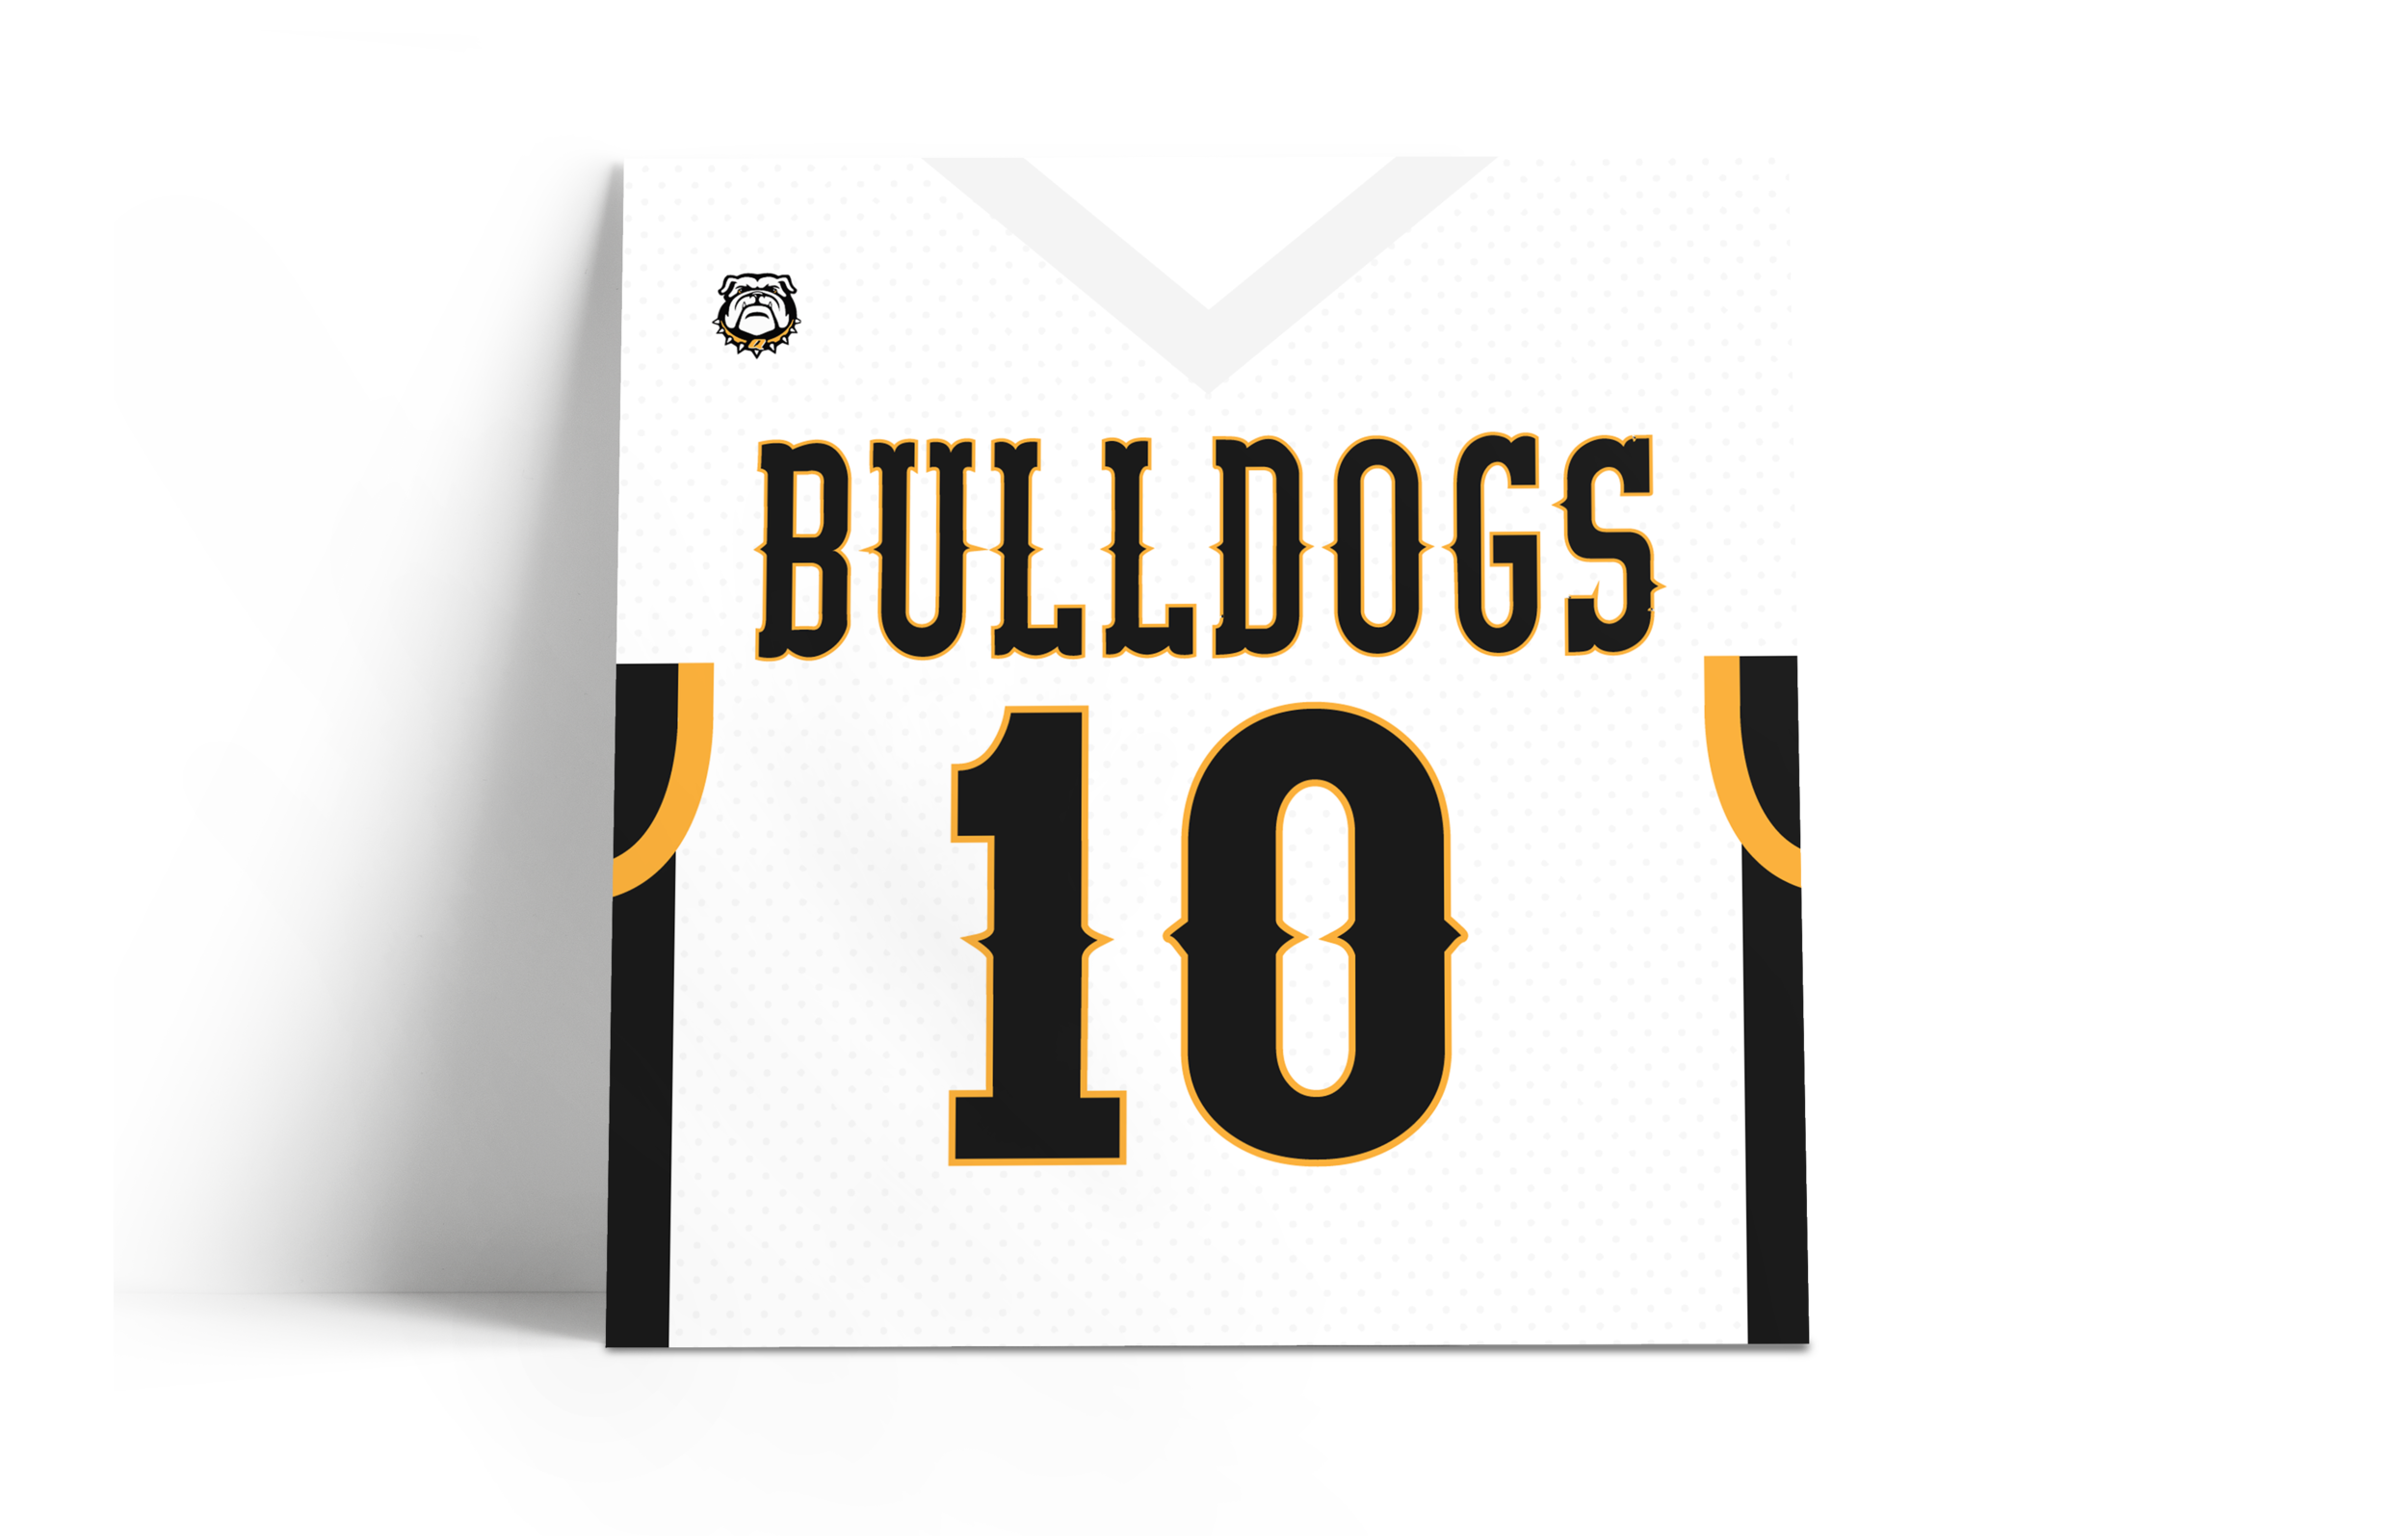 """I got my replicas and am more than impressed. My boys, and especially their parents, are going to love them! I will recommend (Replica) to all of my coaching buddies!"" - brandon burgener, head basketball coach - quitman hs (AR)"